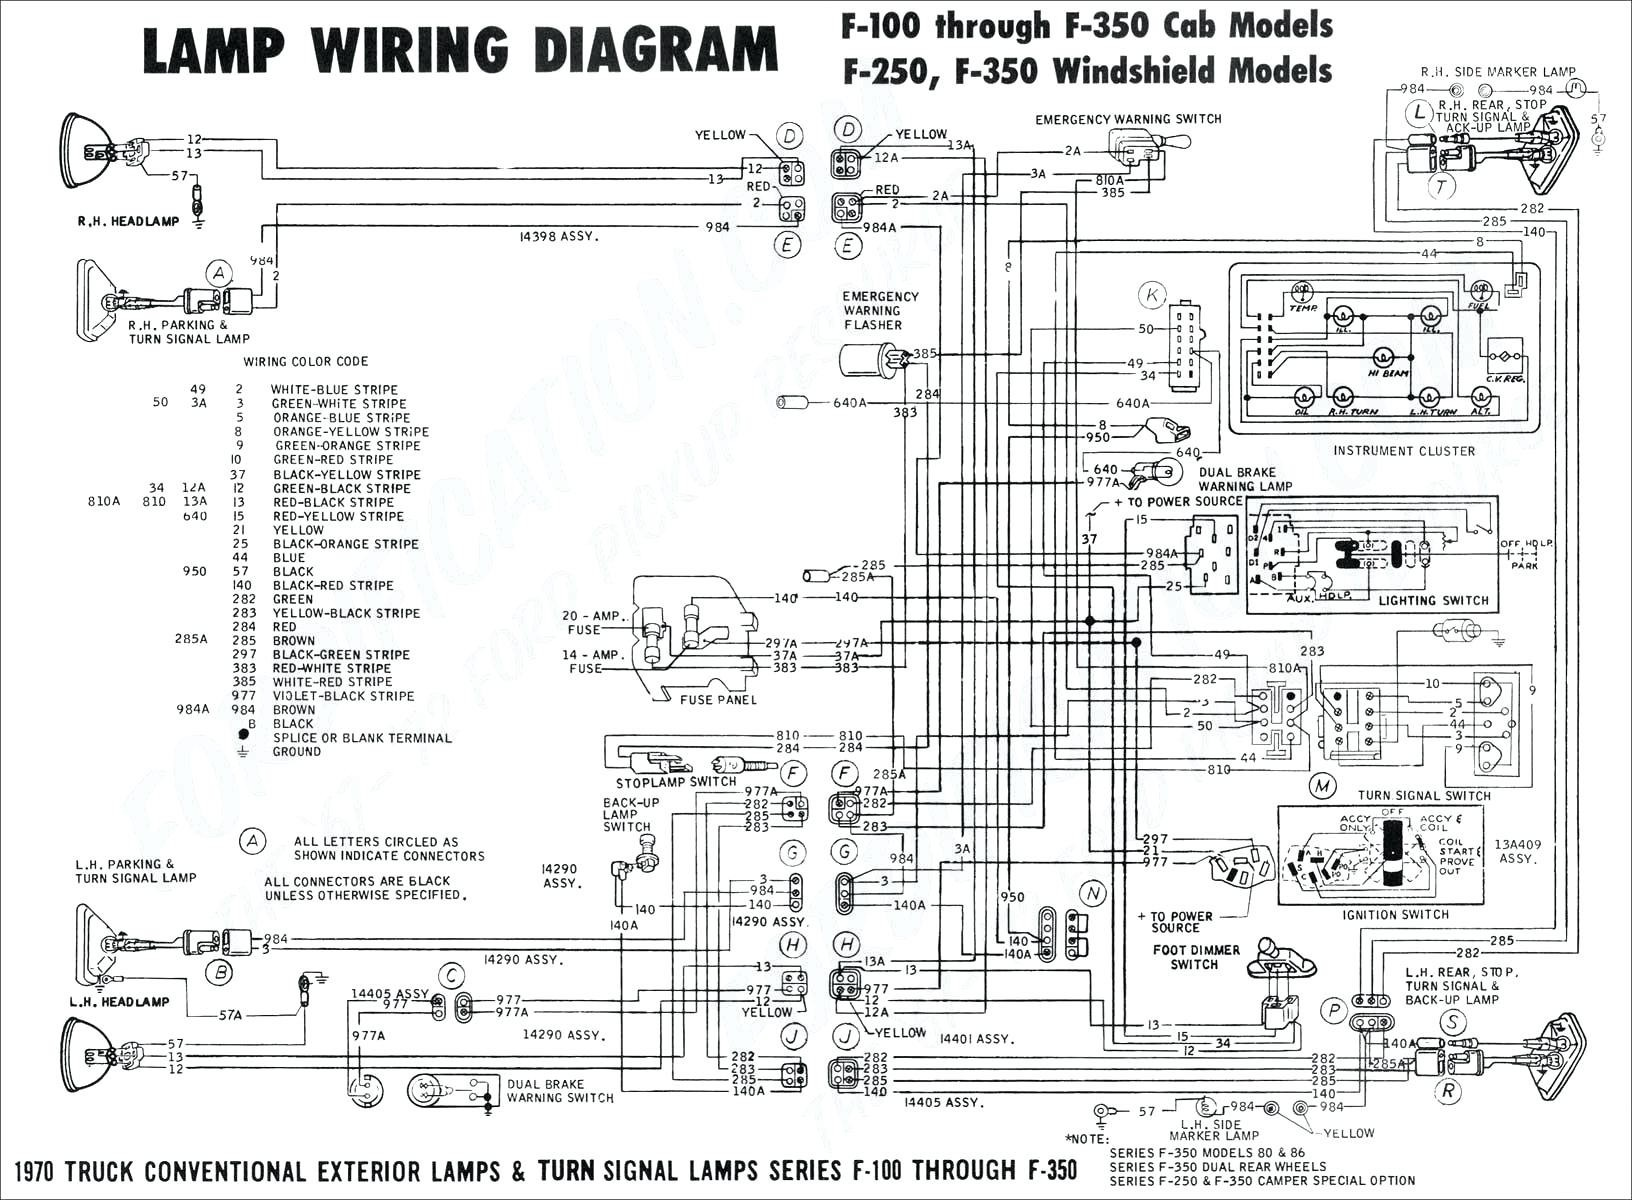 1991 ford F150 Engine Diagram 1991 ford F 150 Tail Light Wiring Diagram  Trusted Wiring Diagrams